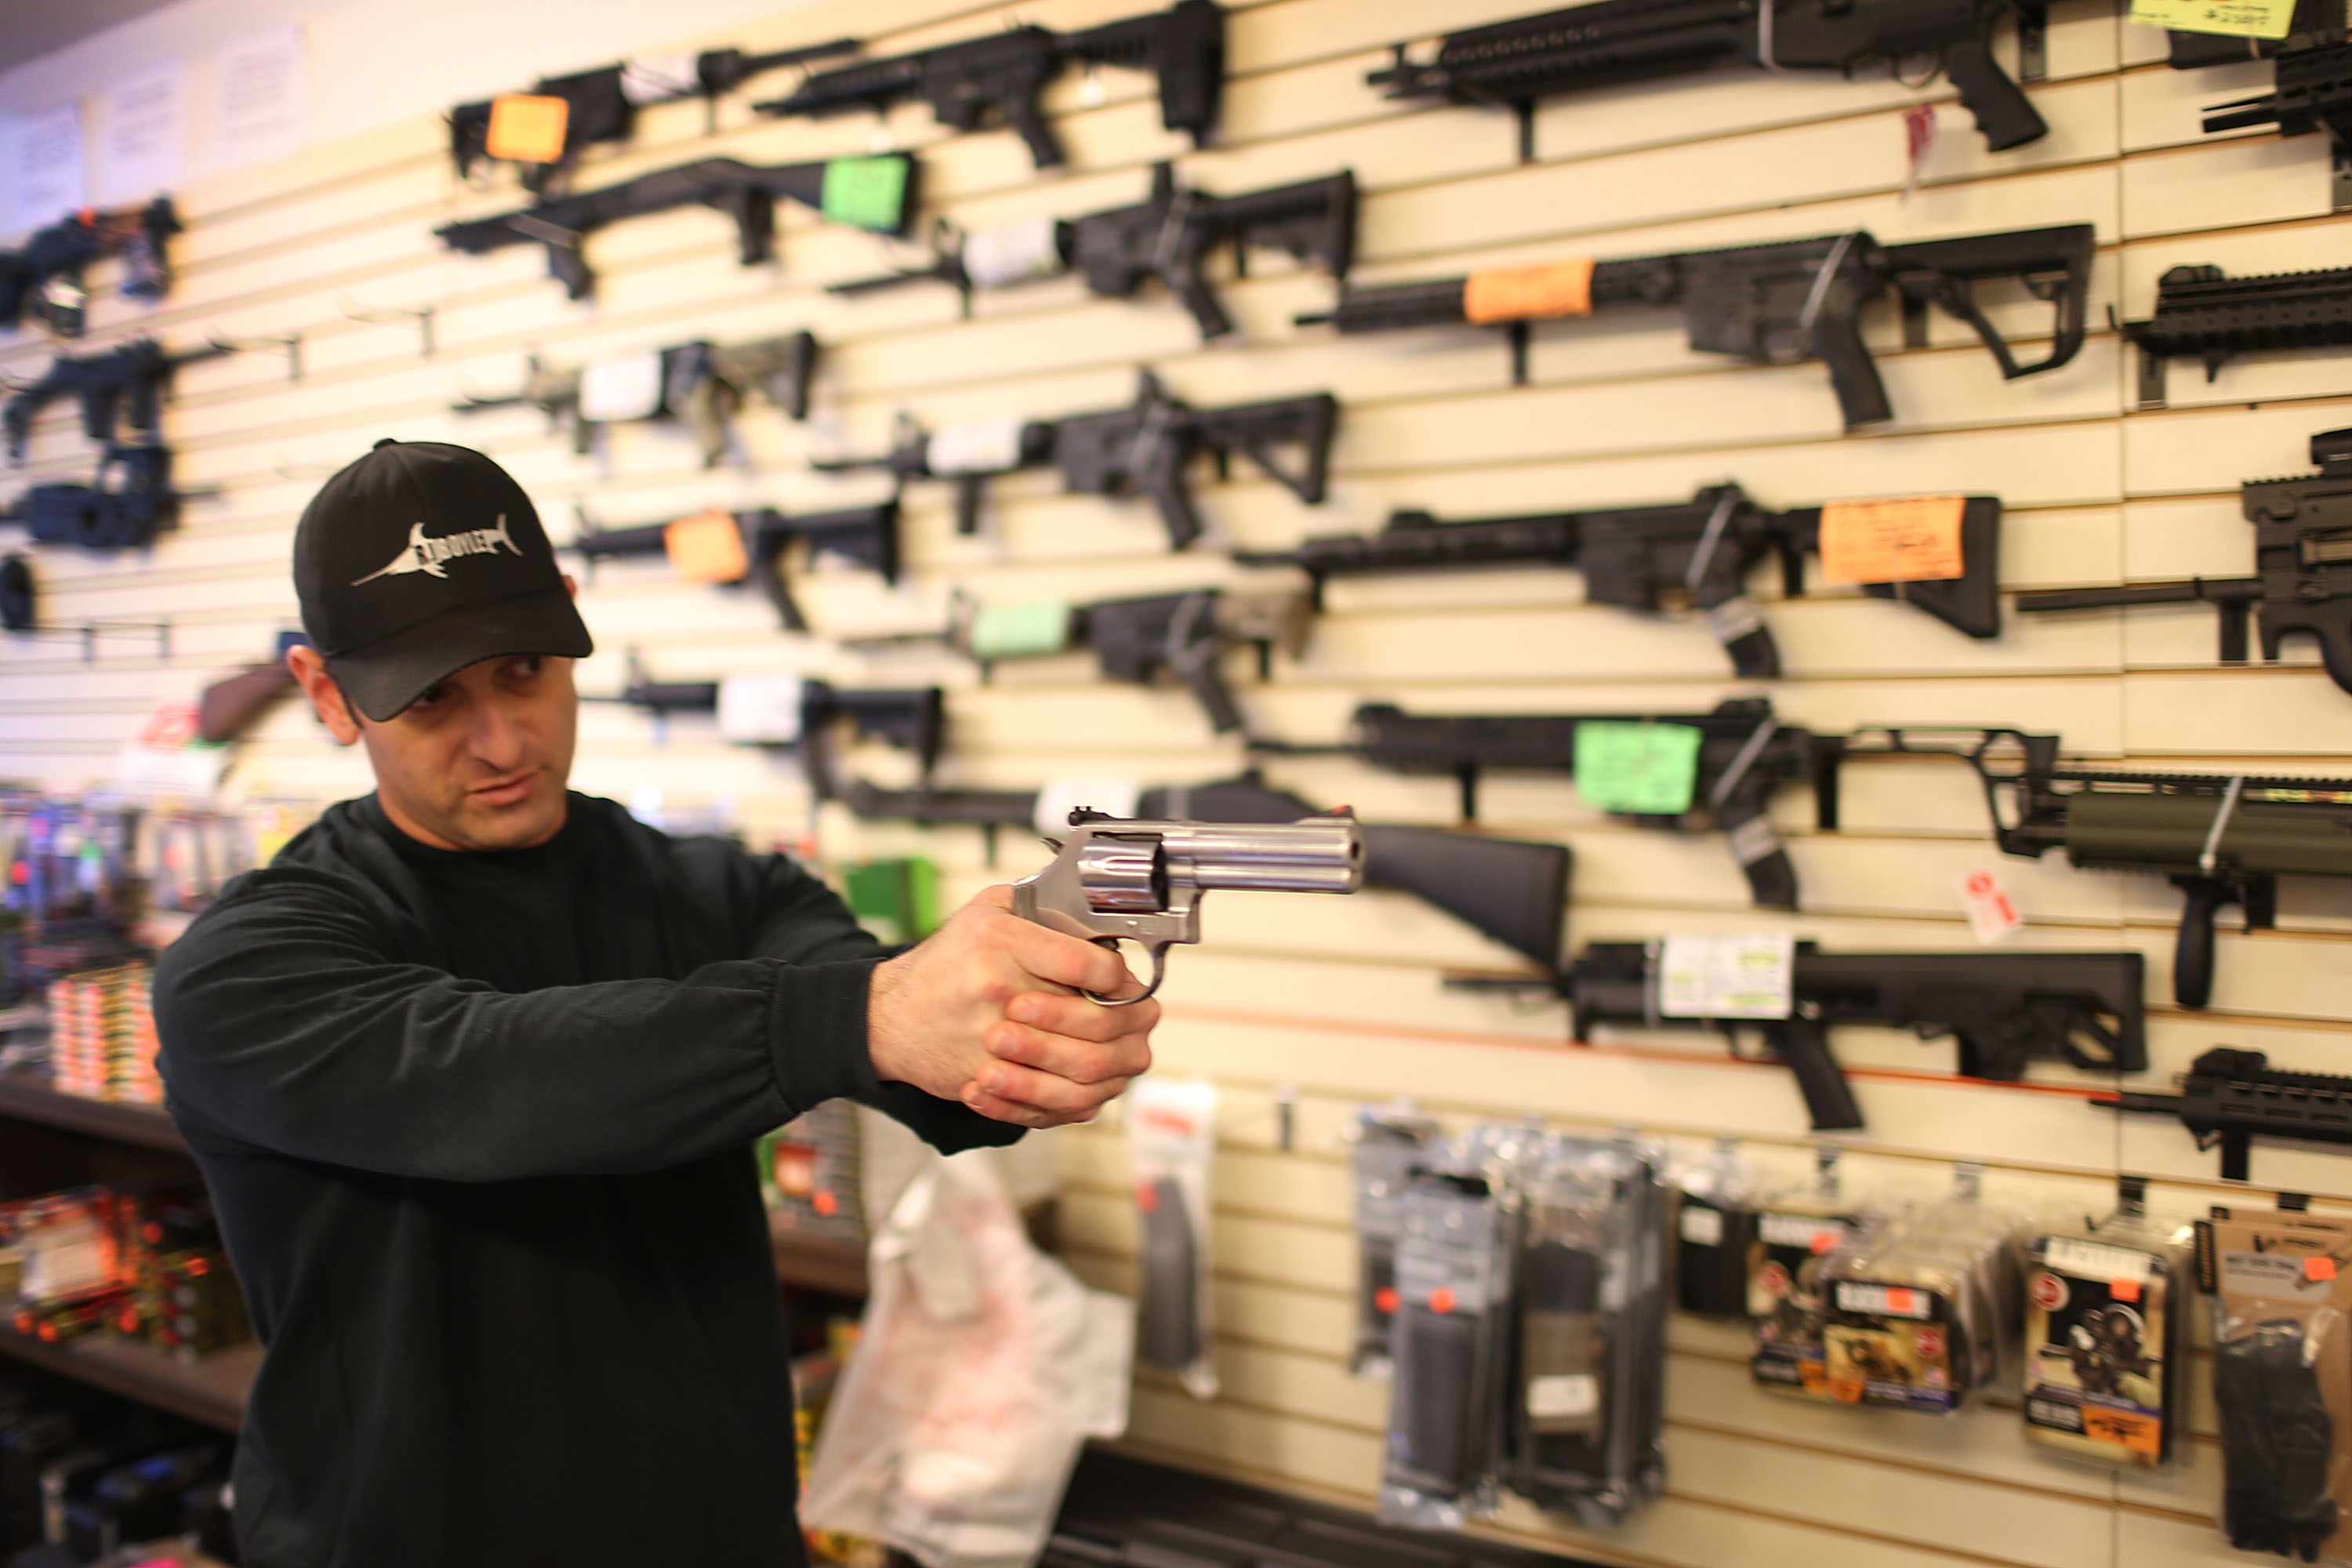 Montana Supreme Court Blocks City's Background Checks for Firearm Sales